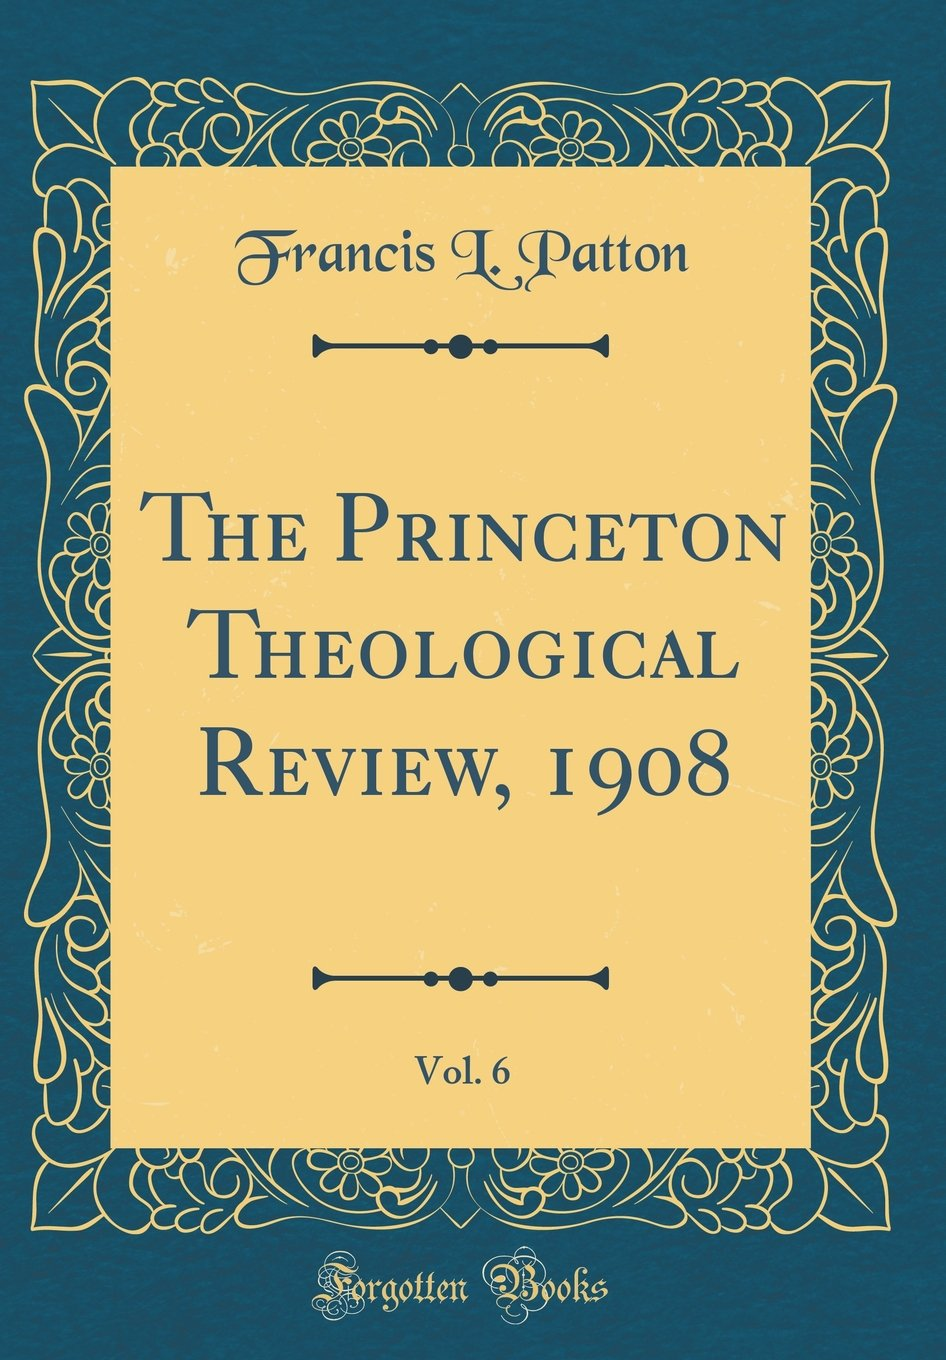 The Princeton Theological Review, 1908, Vol. 6 (Classic Reprint) pdf